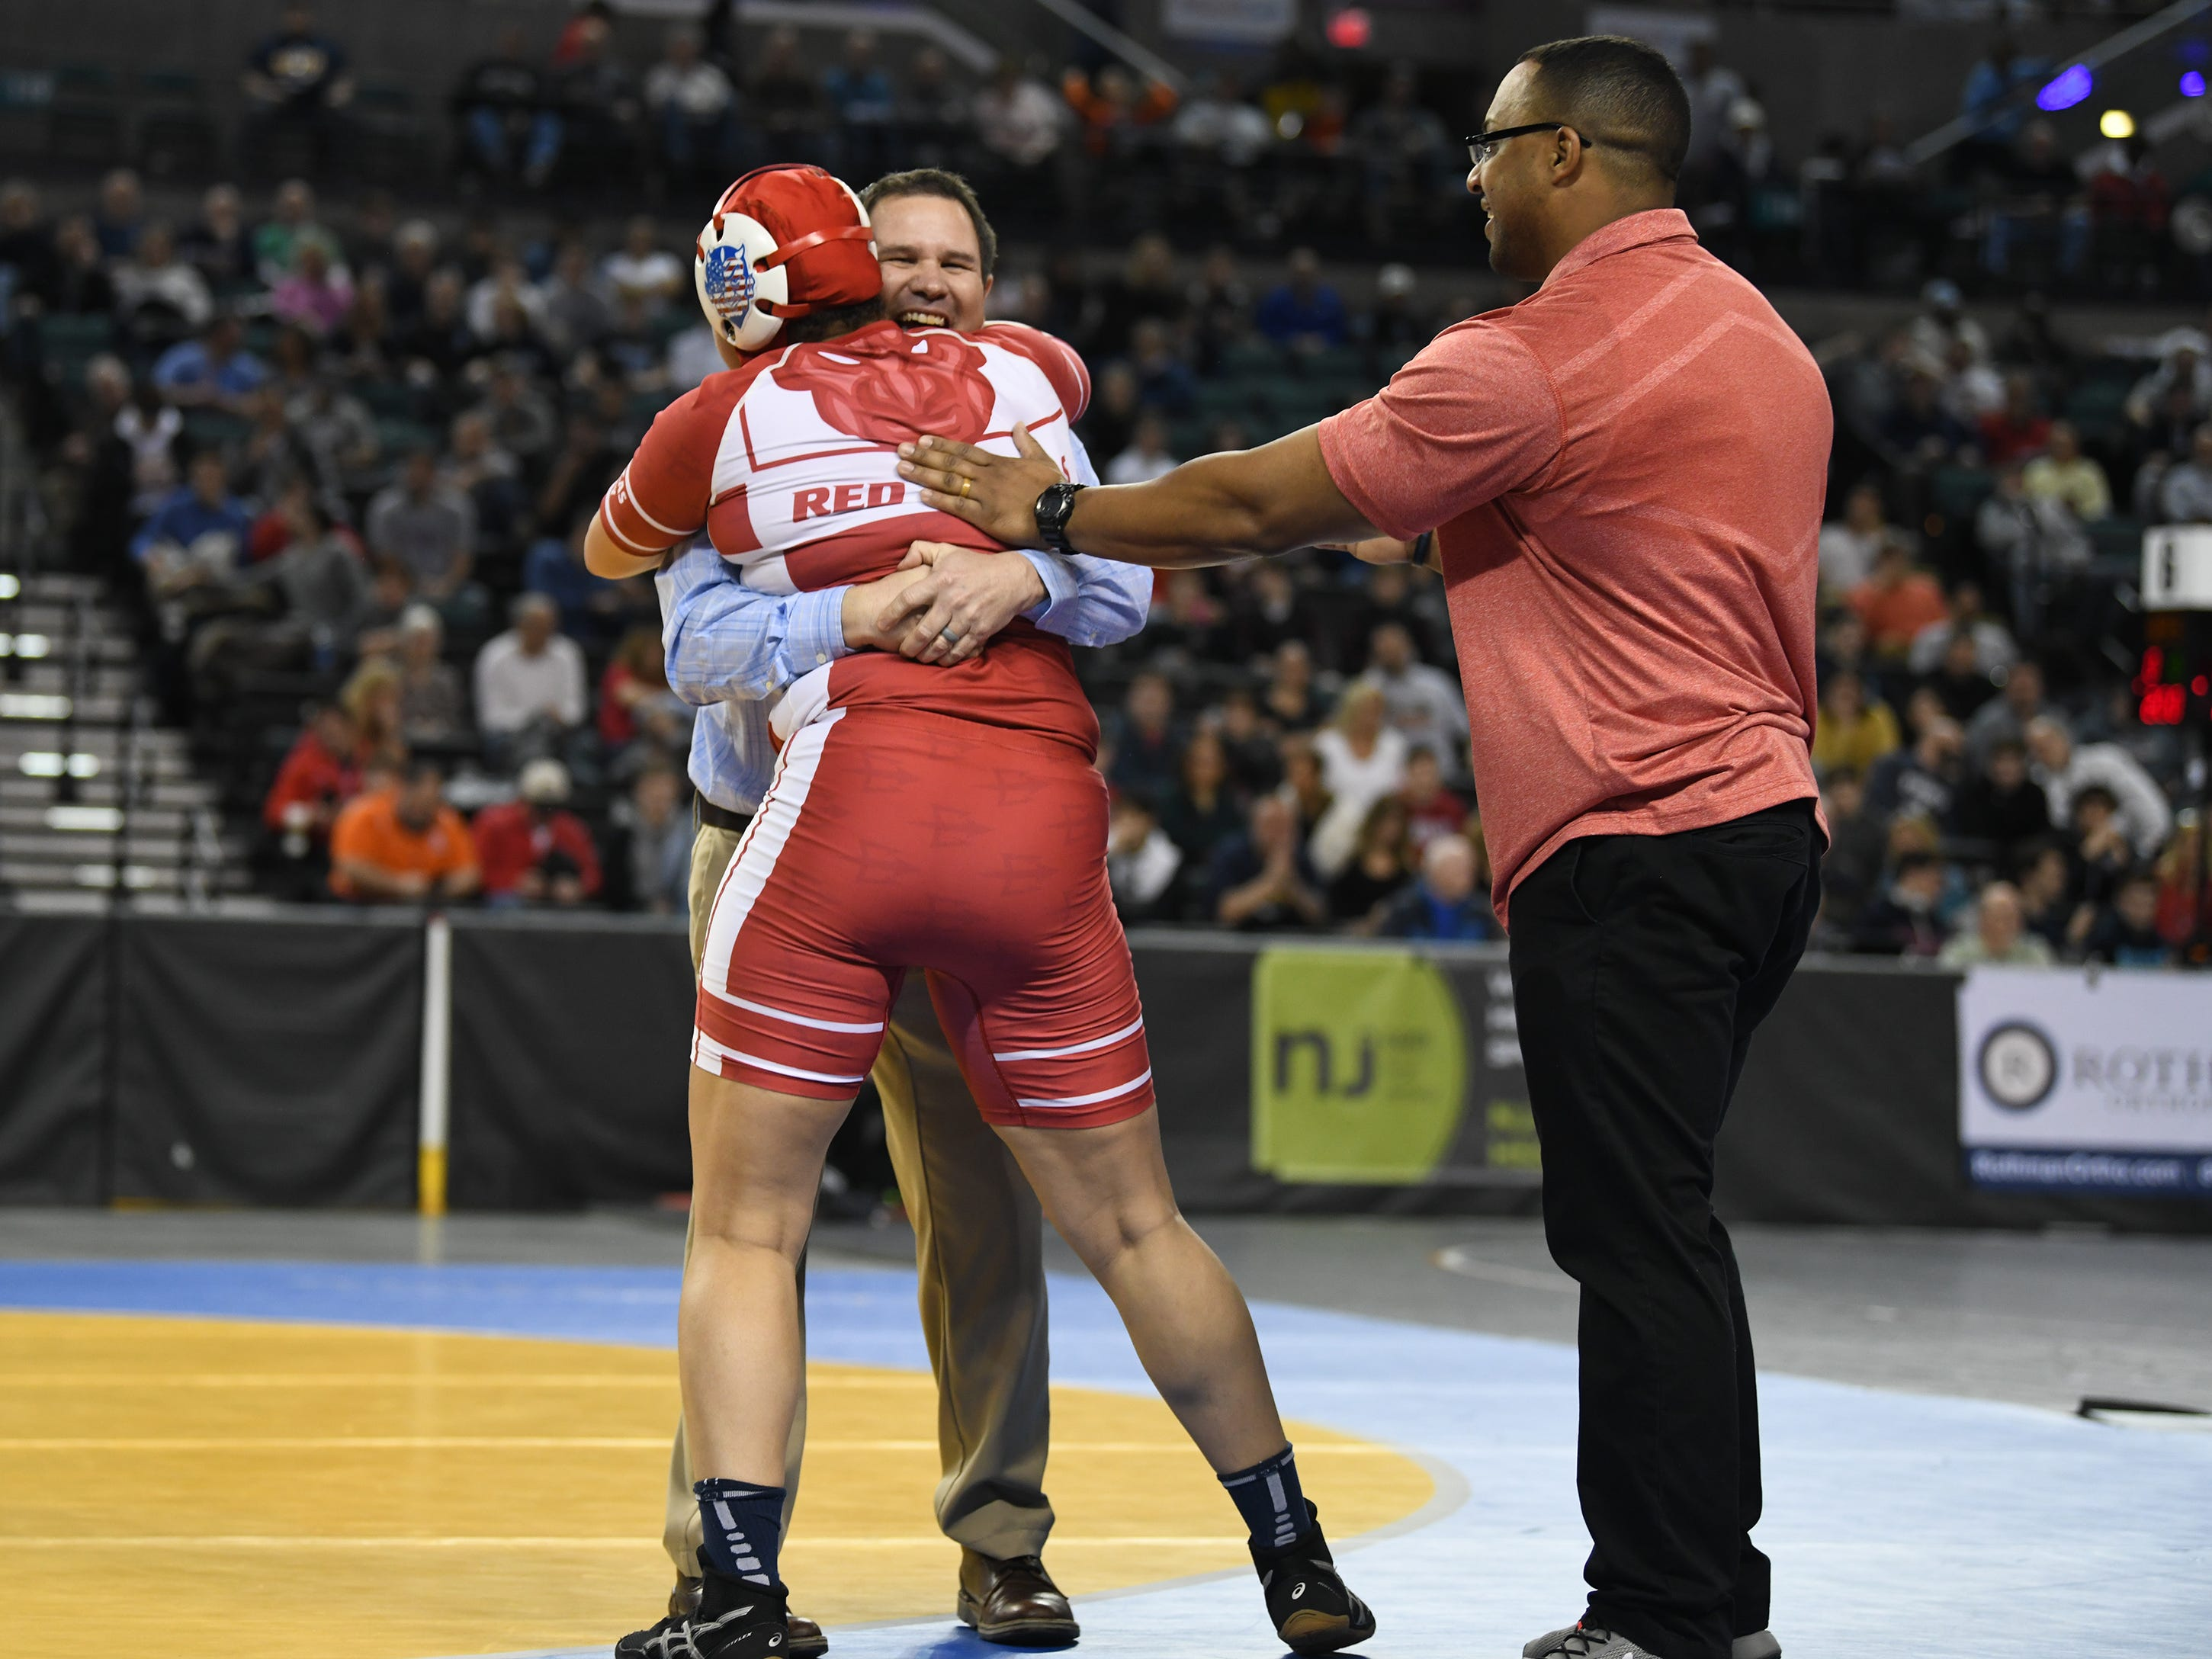 Rancocas Valley's Kaila Mungo celebrates with her coaches after defeating Kittatinny's Kiera Hubmaster, 2-1, in the 235 lb. championship bout of the 2019 NJSIAA Girls State Wrestling Championships tournament held at Boardwalk Hall in Atlantic City on Saturday, March 2, 2019.